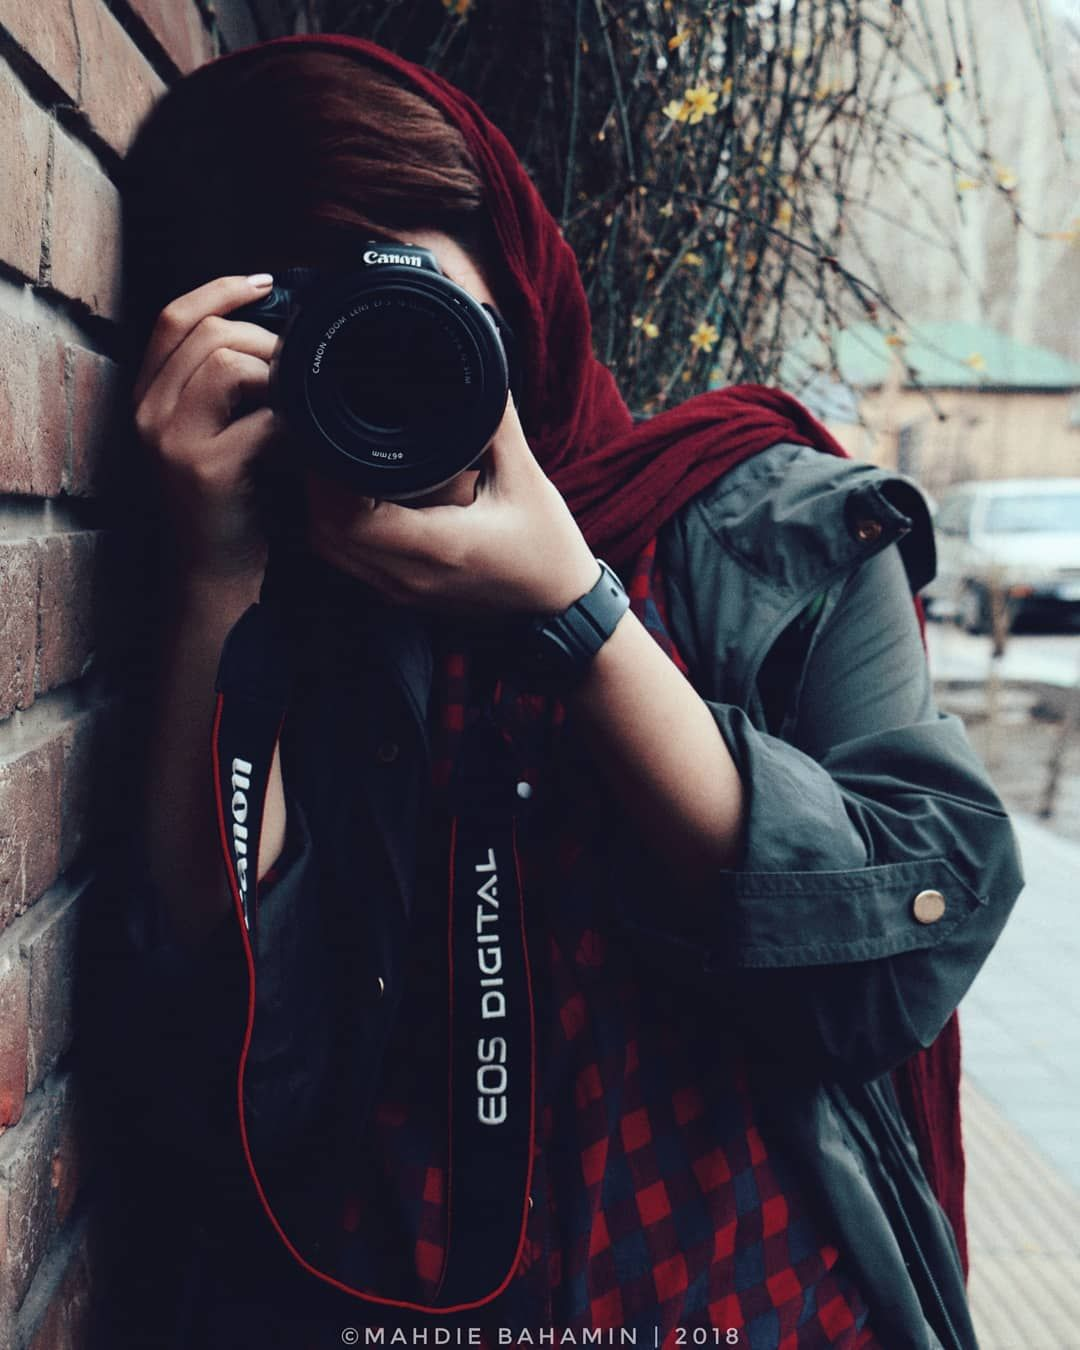 Image May Contain One Or More People And Outdoor Photographer Girl Photography Poses Women Girl Photo Poses